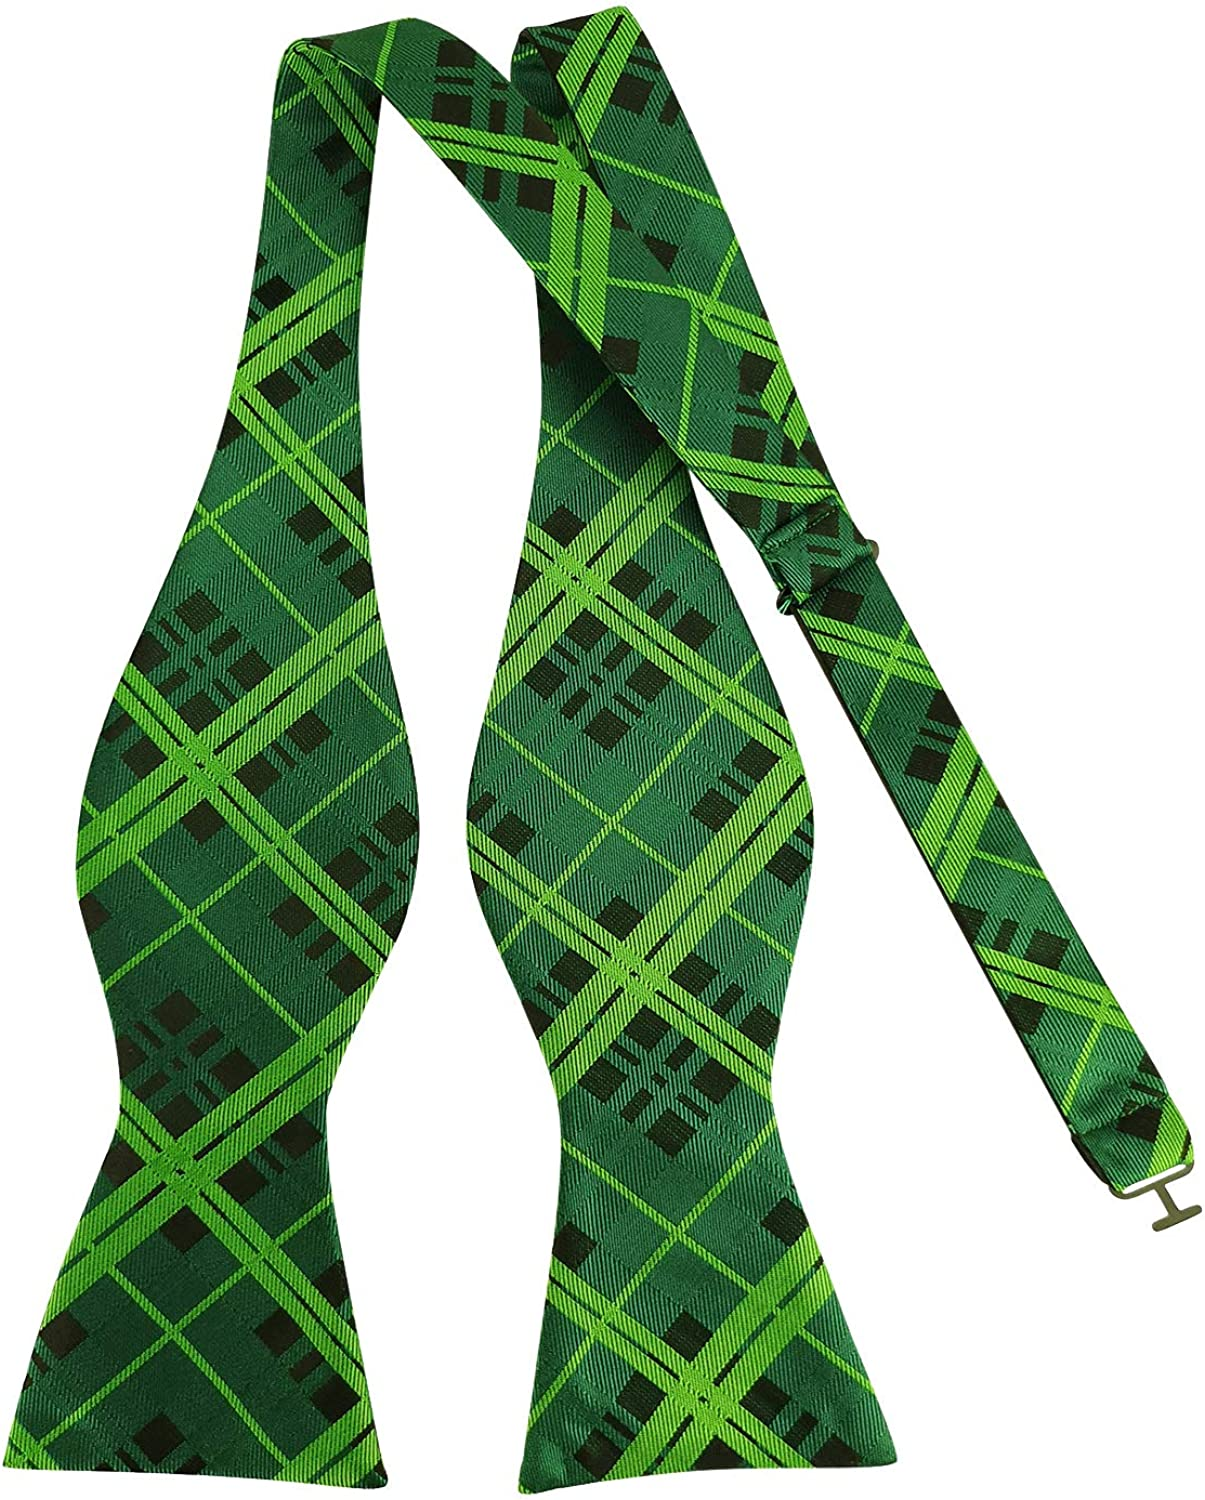 Cheap Men's Exquisite Woven Green Self Bow Solid Cheap bargain Bowties Plaid Tie